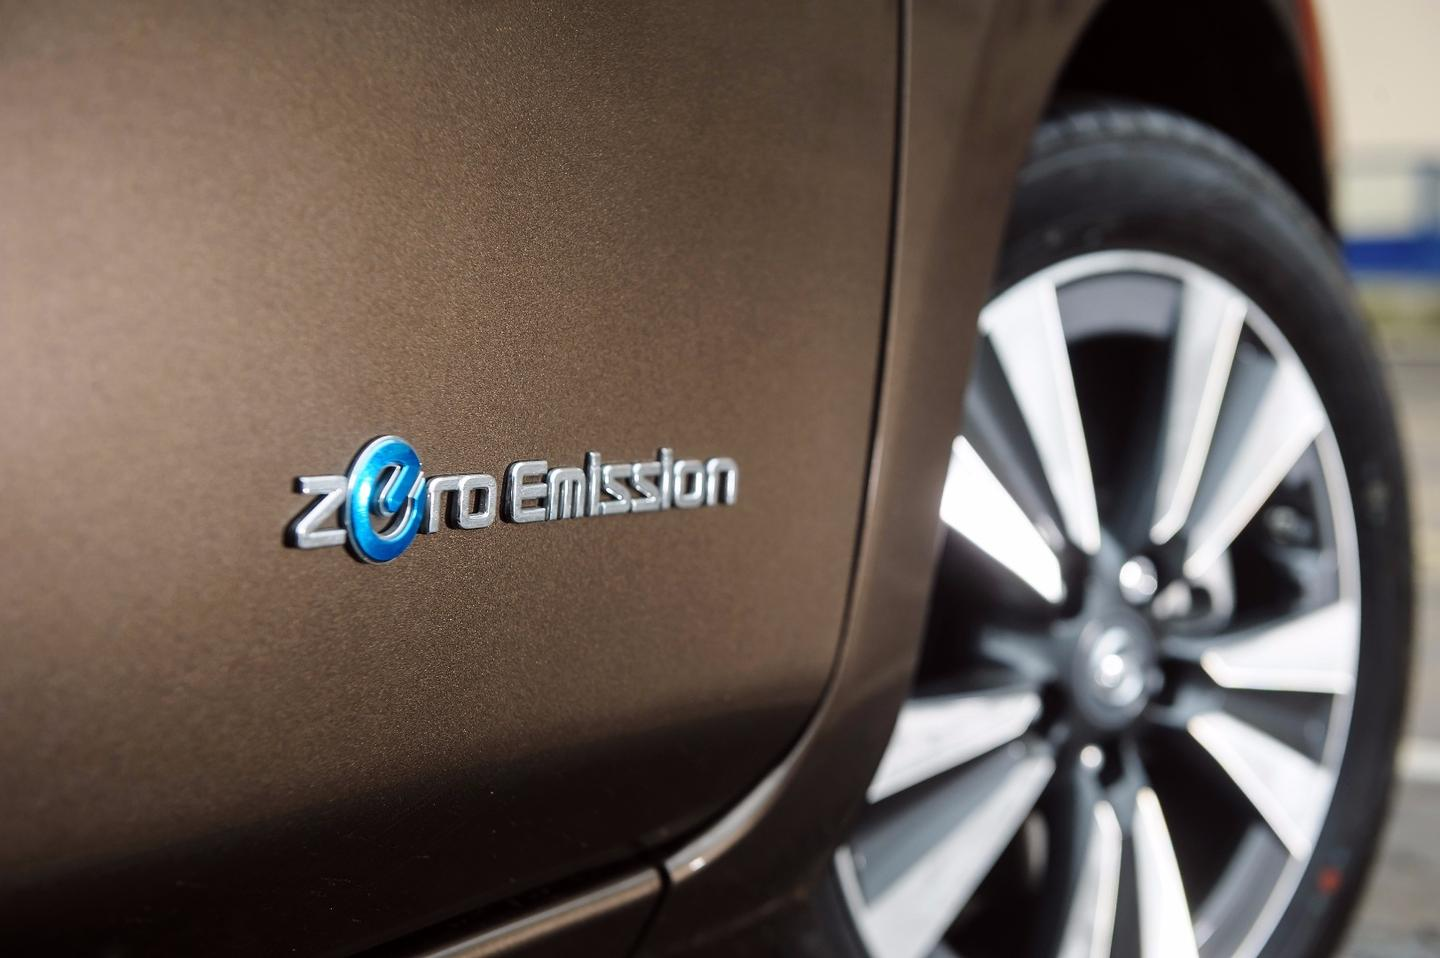 The Nissan Leaf is likely to benefit from the improvements in battery tech